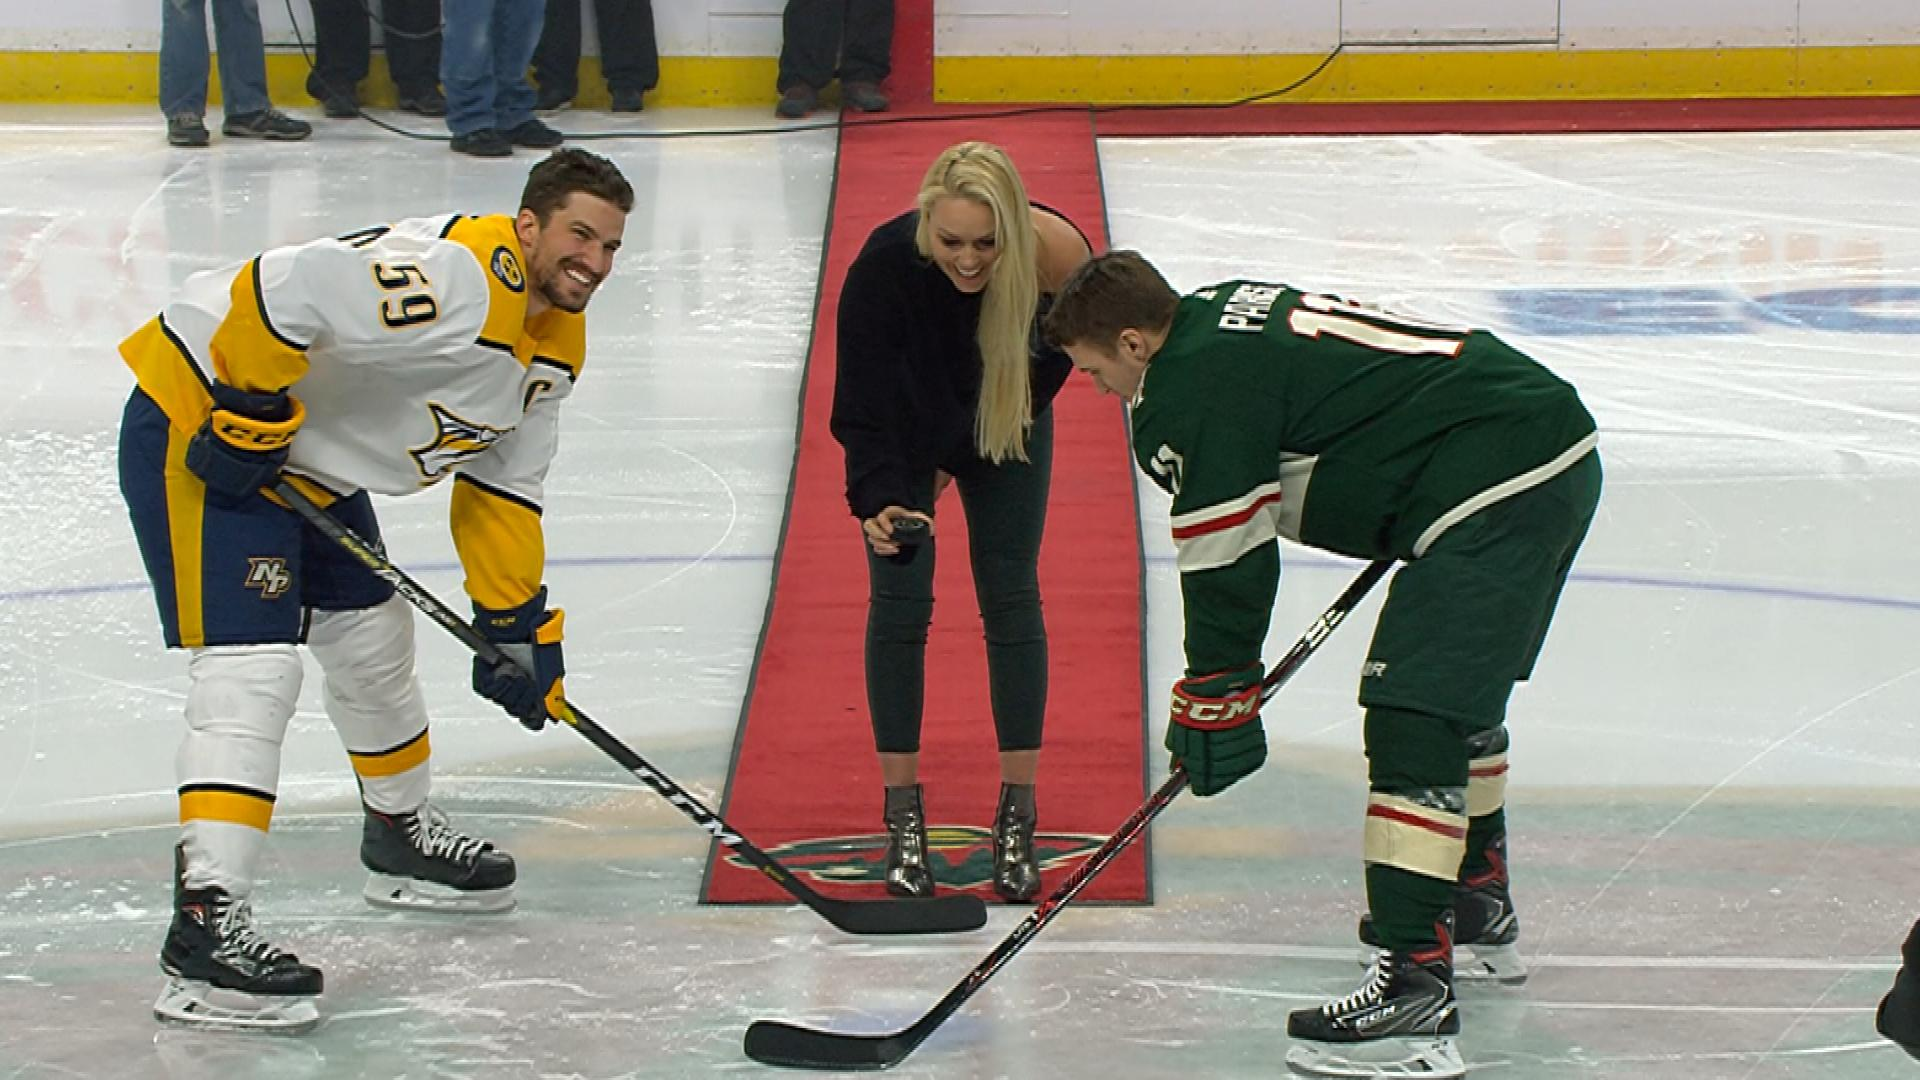 Lindsey Vonn does ceremonial puck drop before Predators vs. Wild